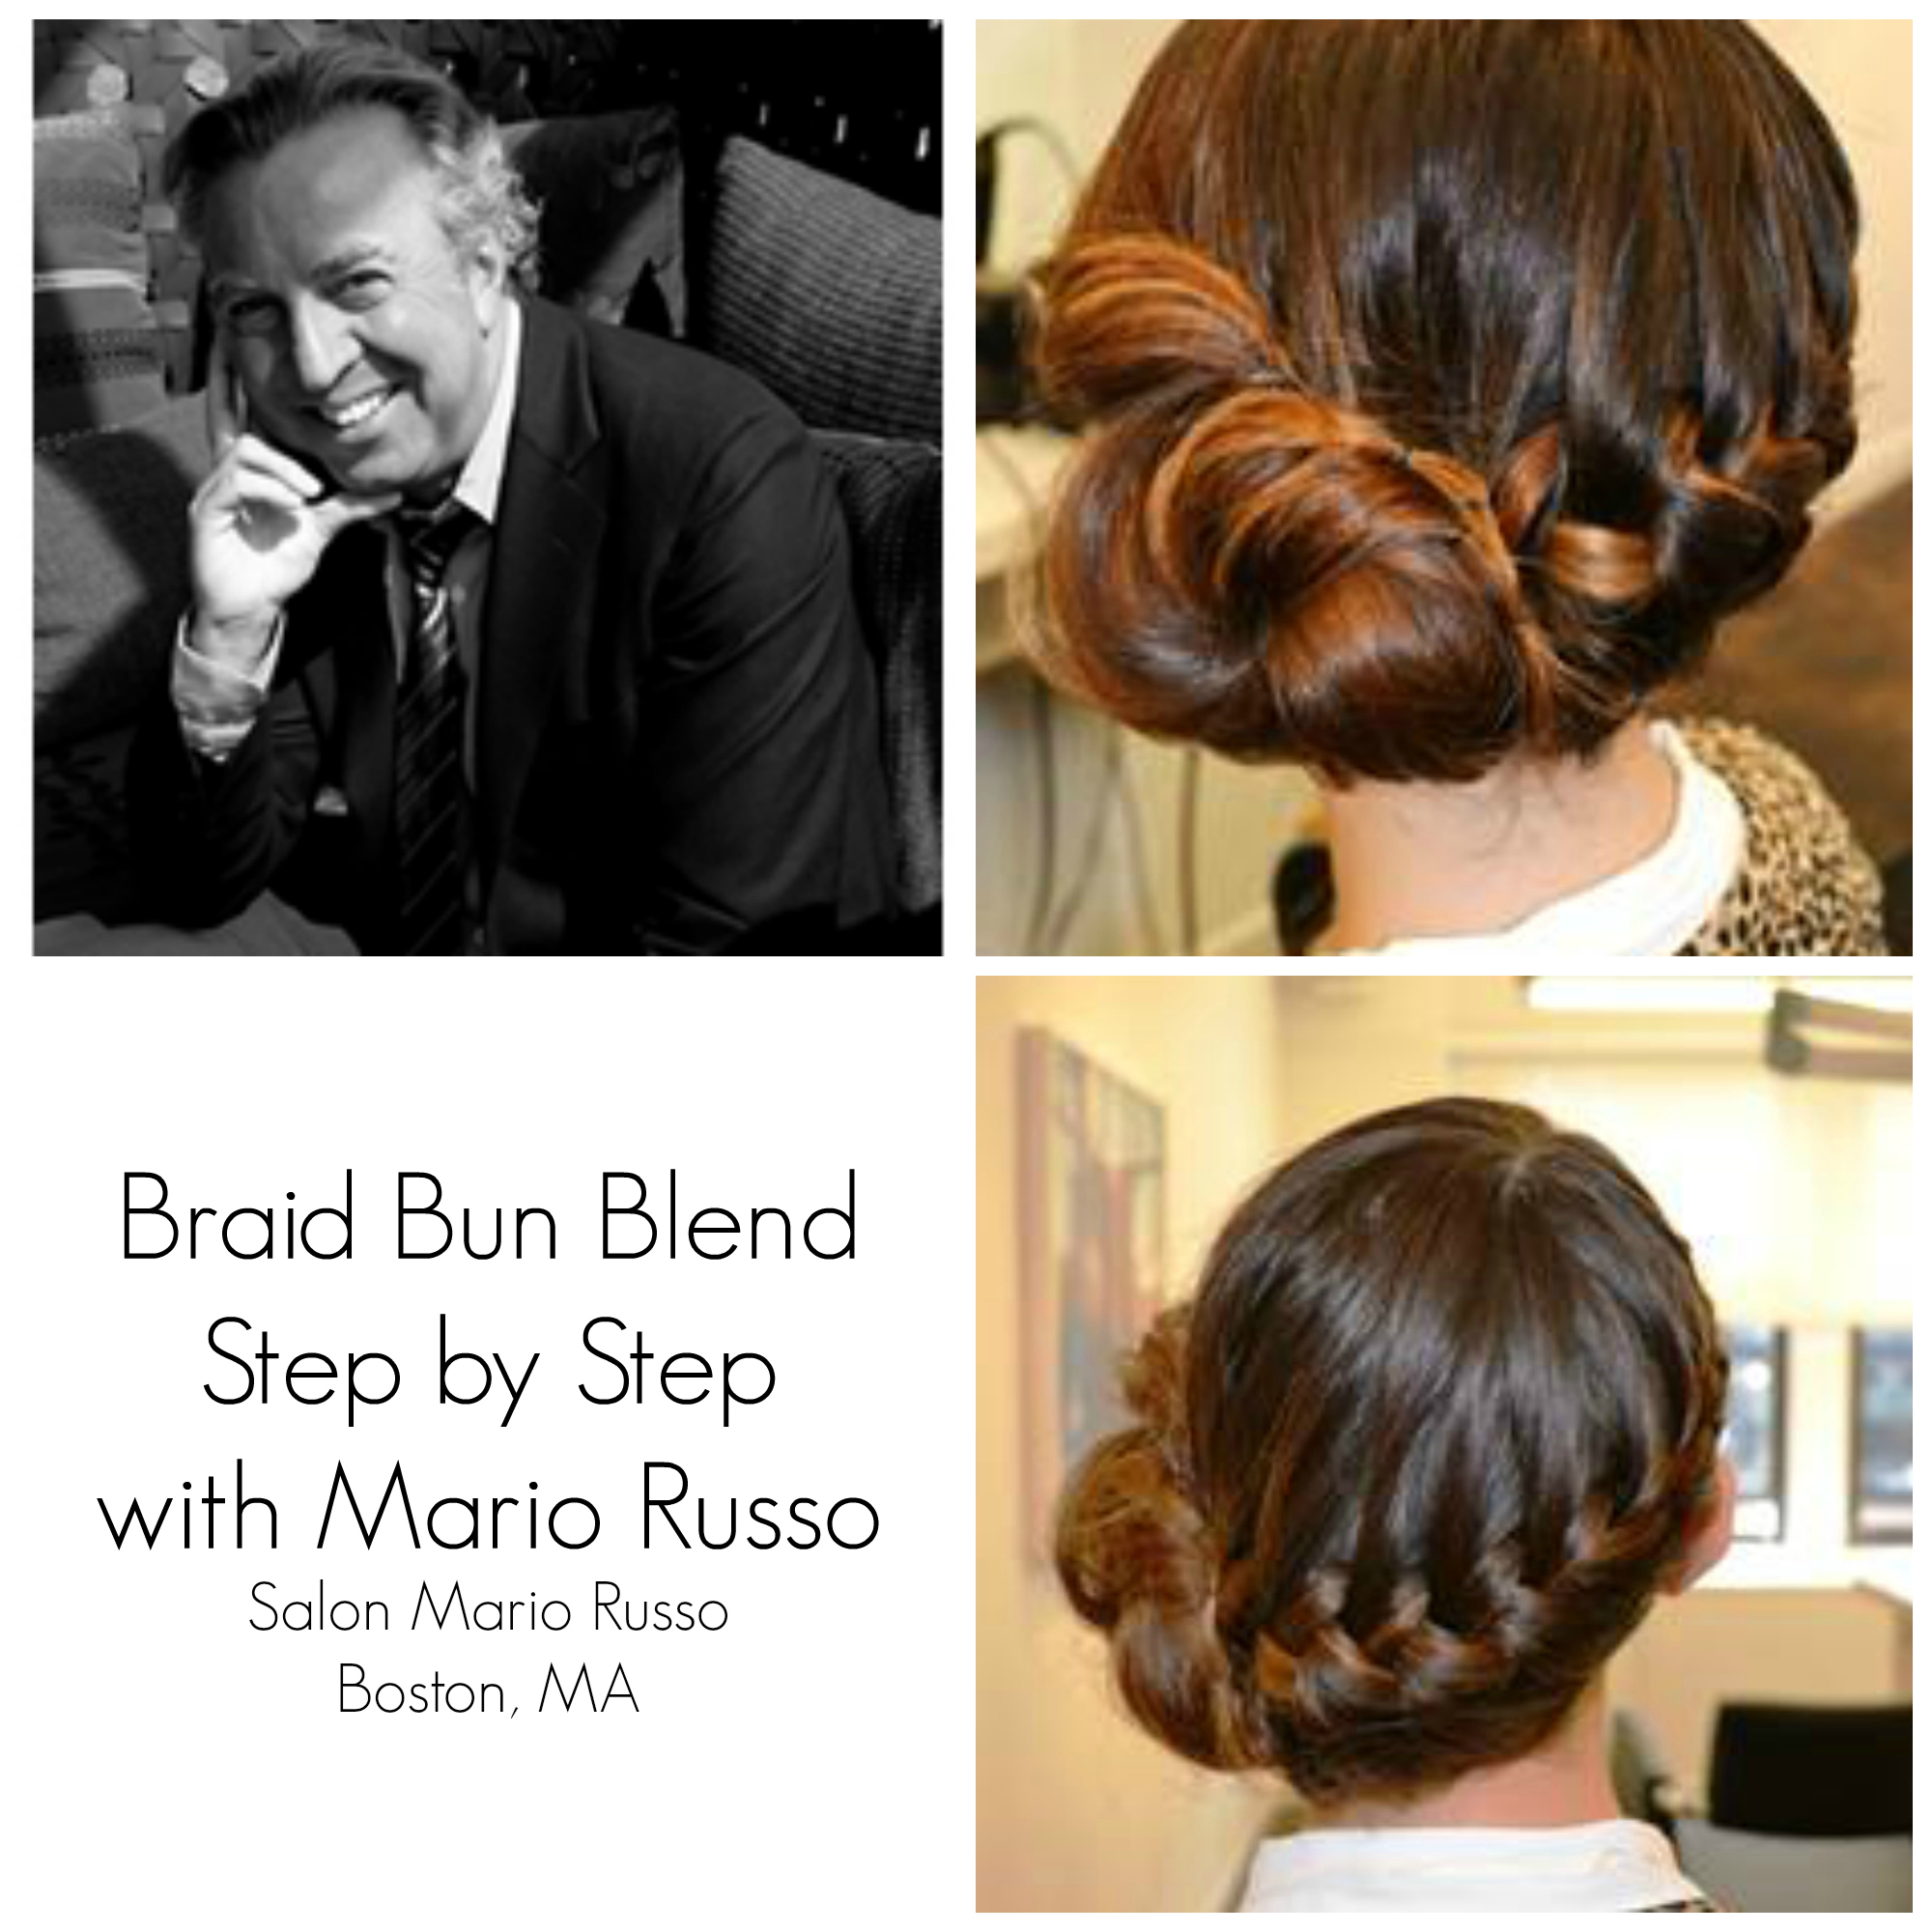 holiday hair, mario russo, salon mario russo, christabelletheblog.com, how to hair, step by step hair, hair tutorials